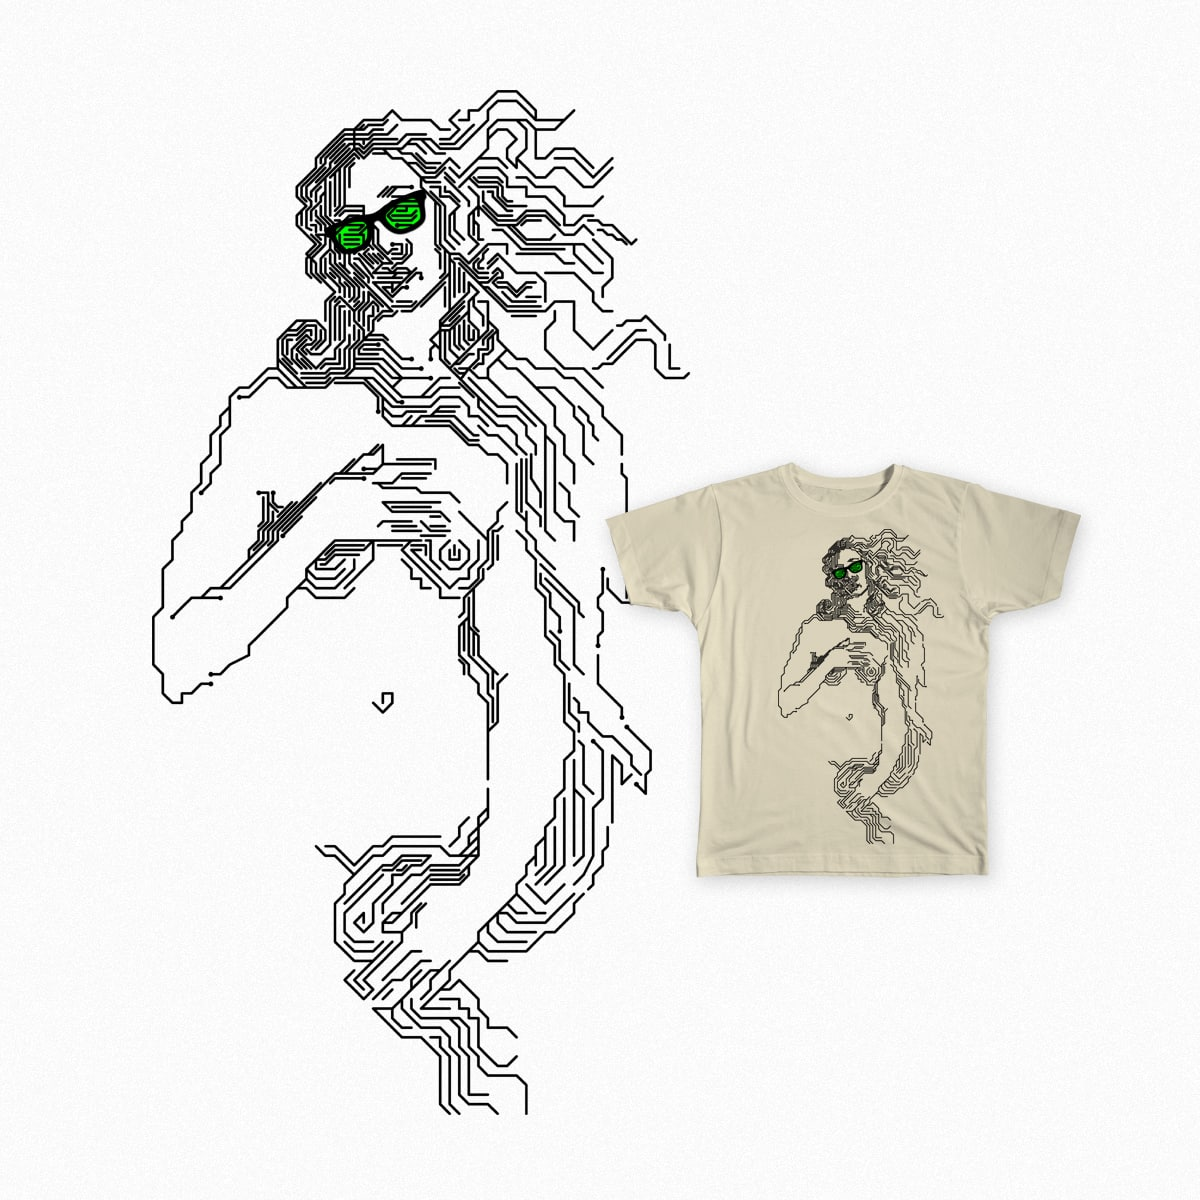 rebirth by bulo on Threadless